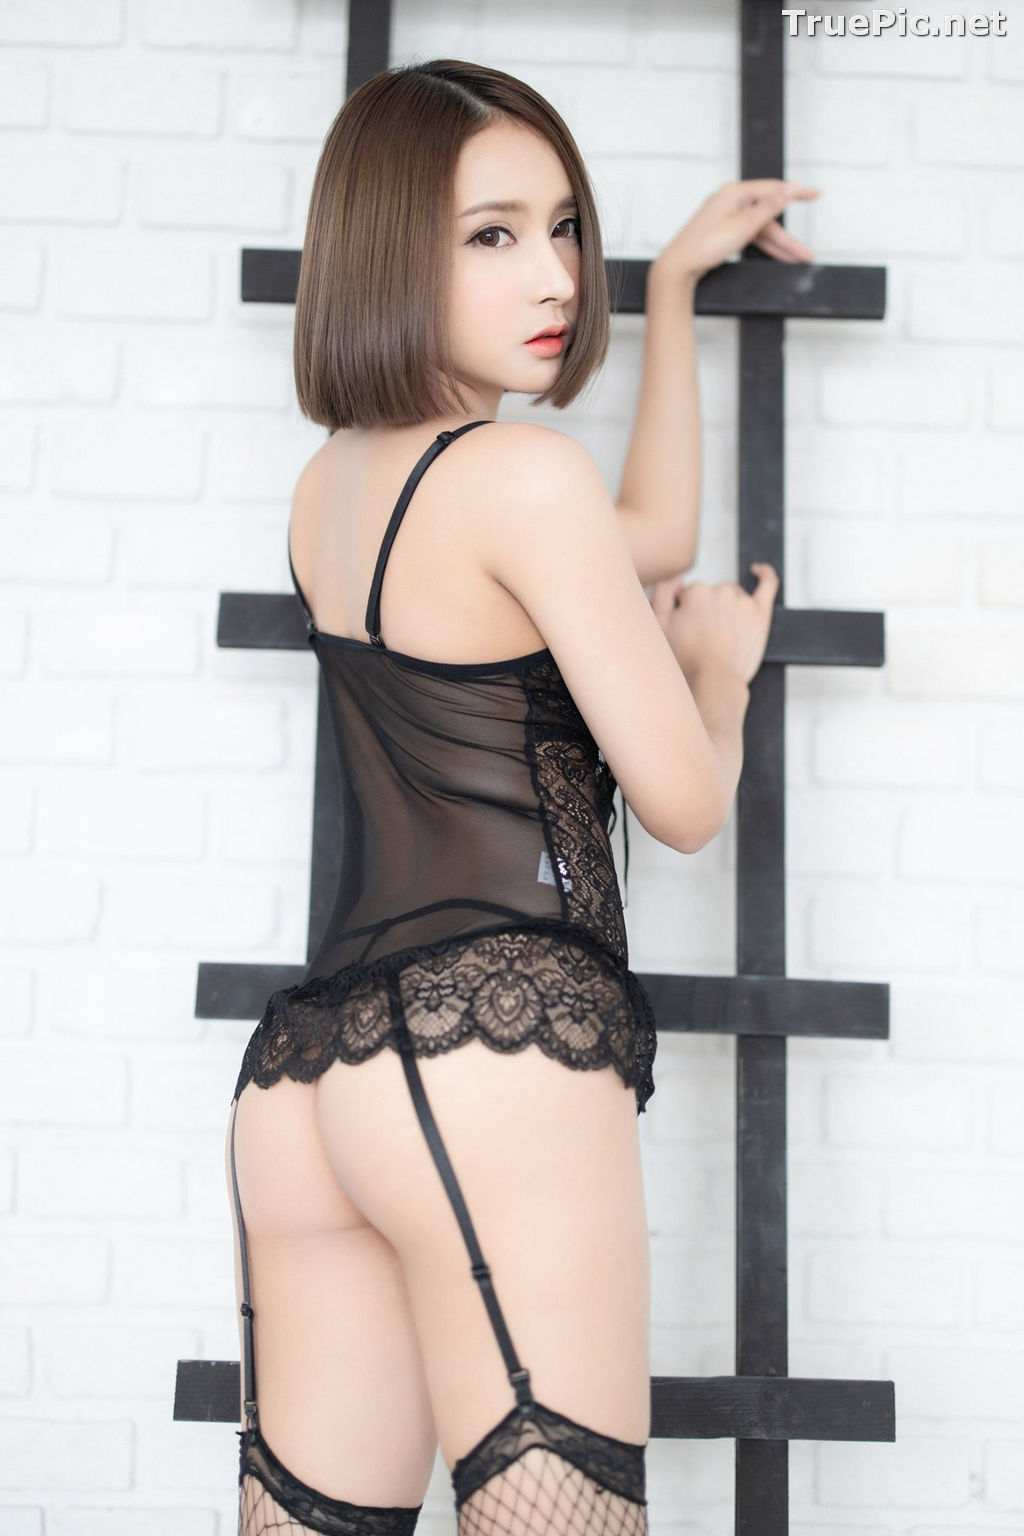 Image Thailand Sexy Model - ธนพร อ้นเซ่ง - How Do You Feel About Me - TruePic.net - Picture-8